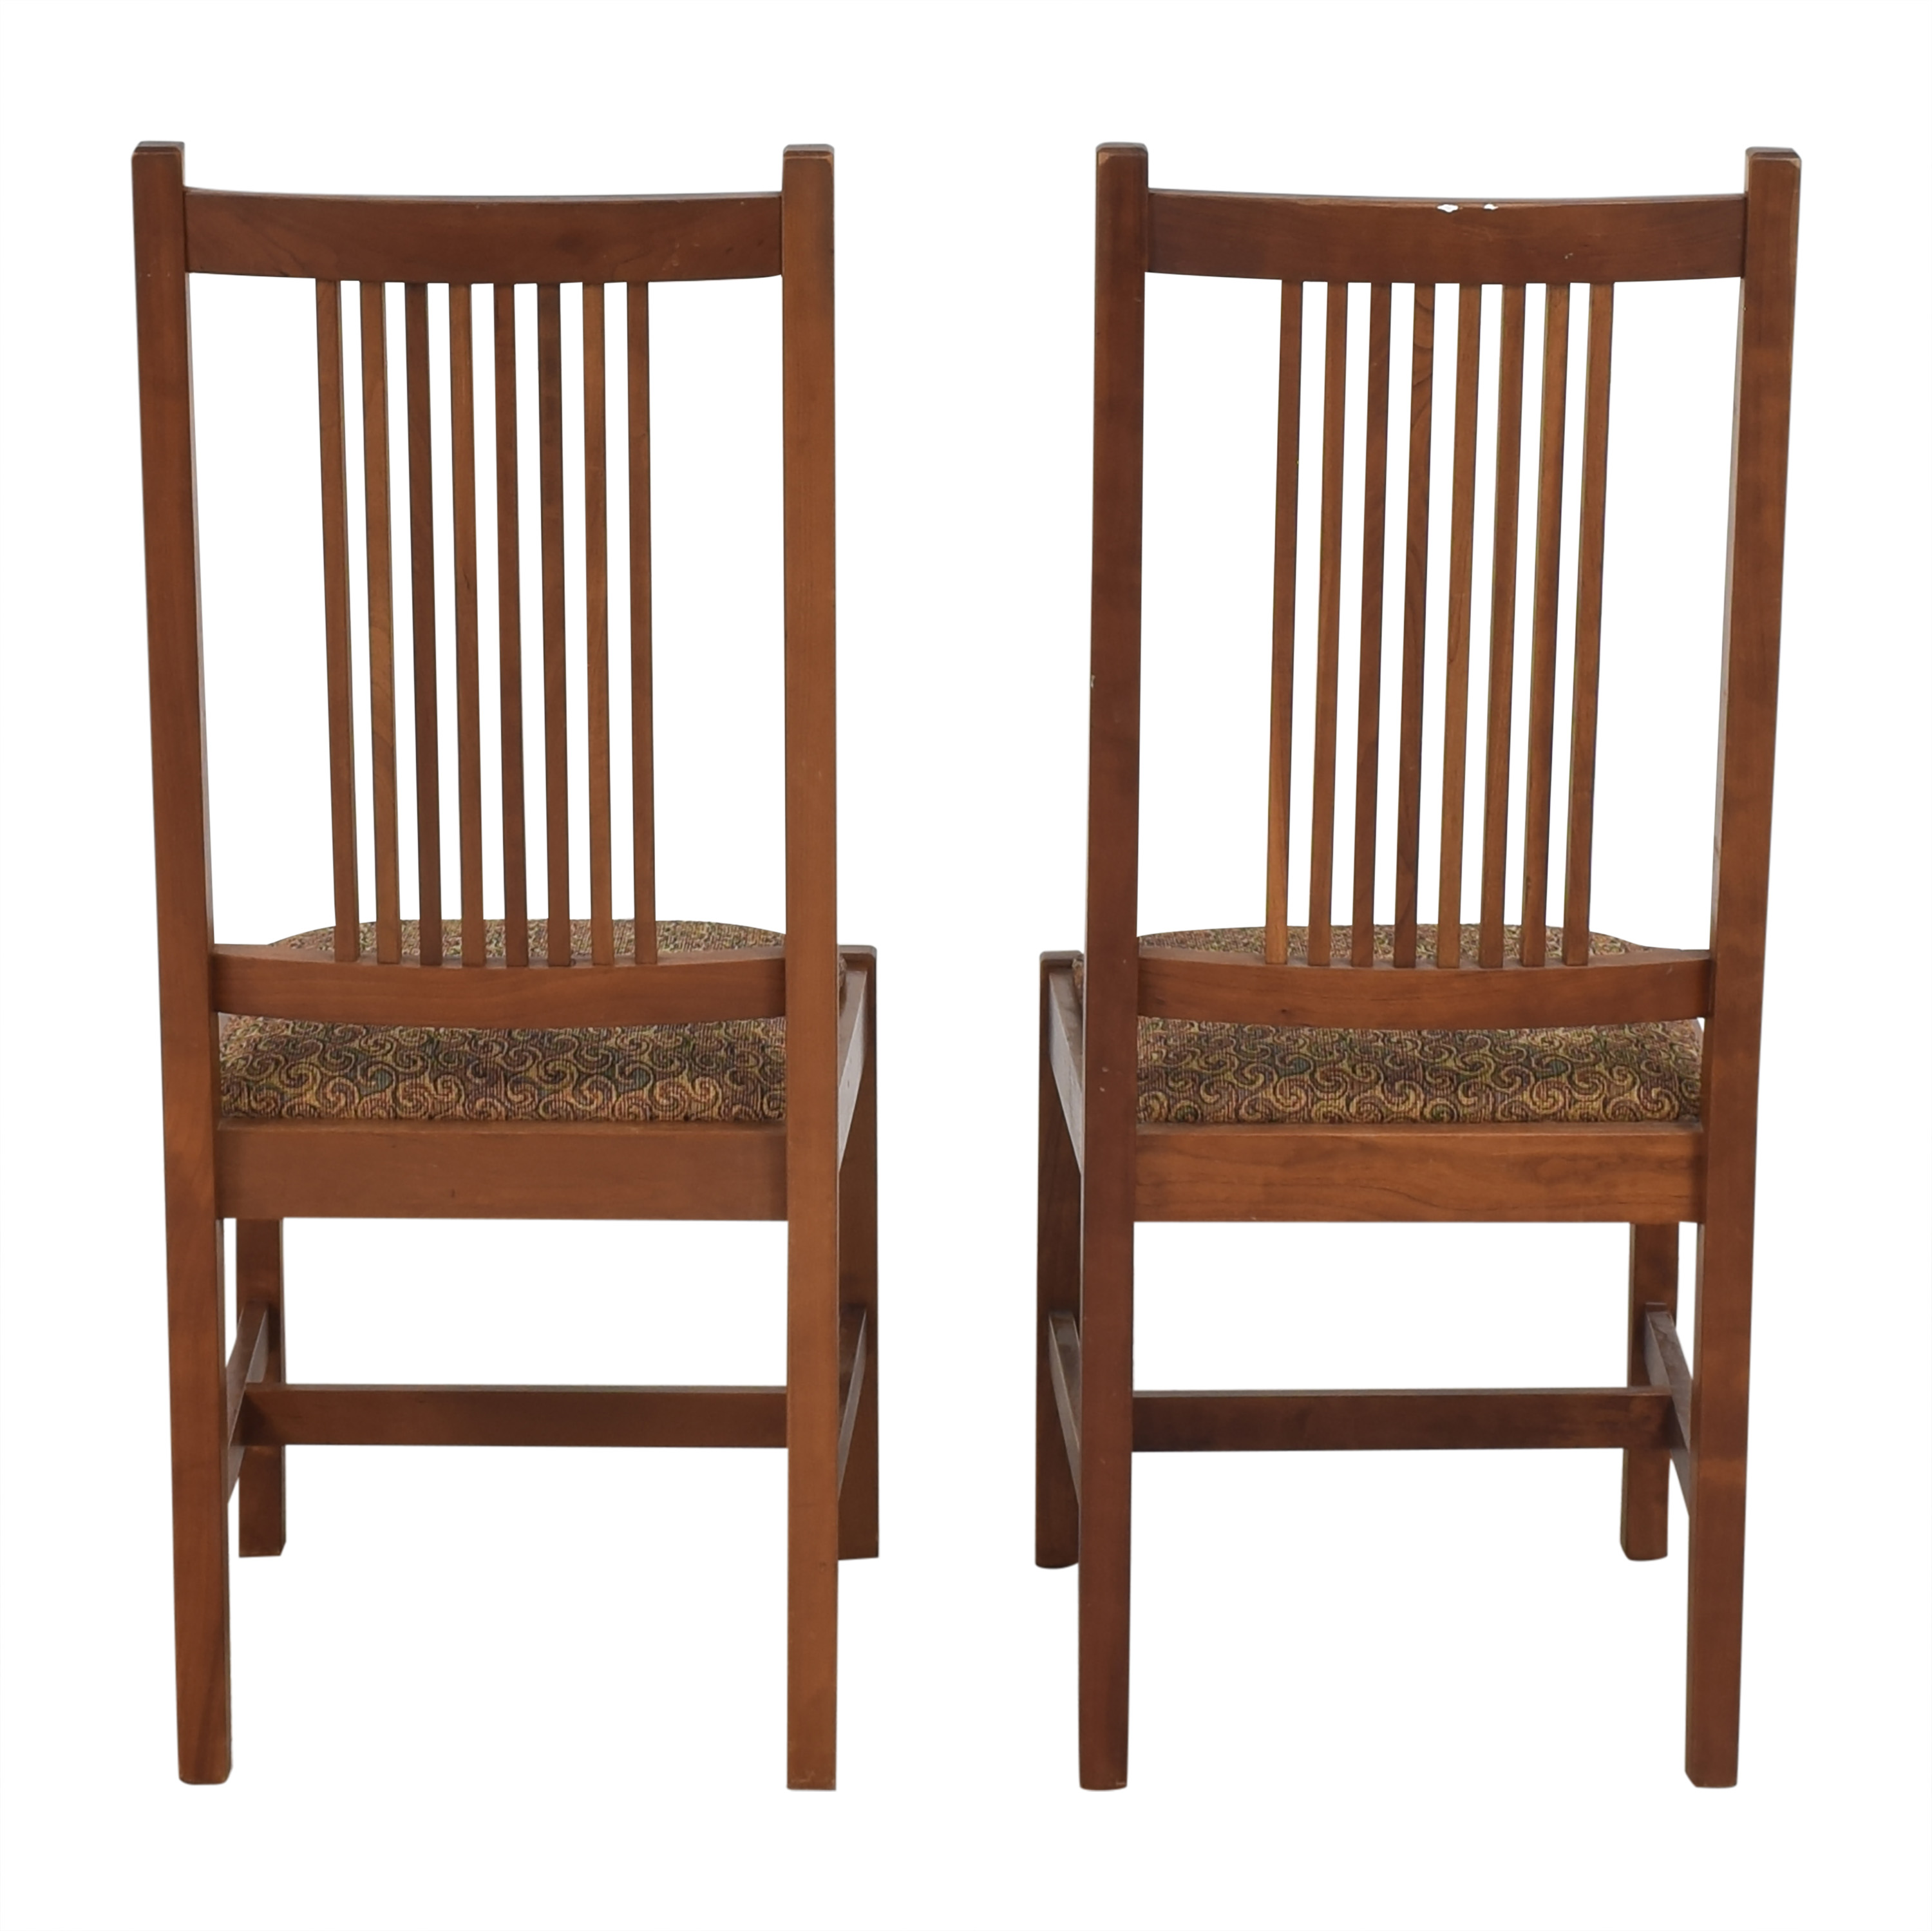 Stickley Furniture Stickley Furniture Shaker Dining Side Chairs second hand